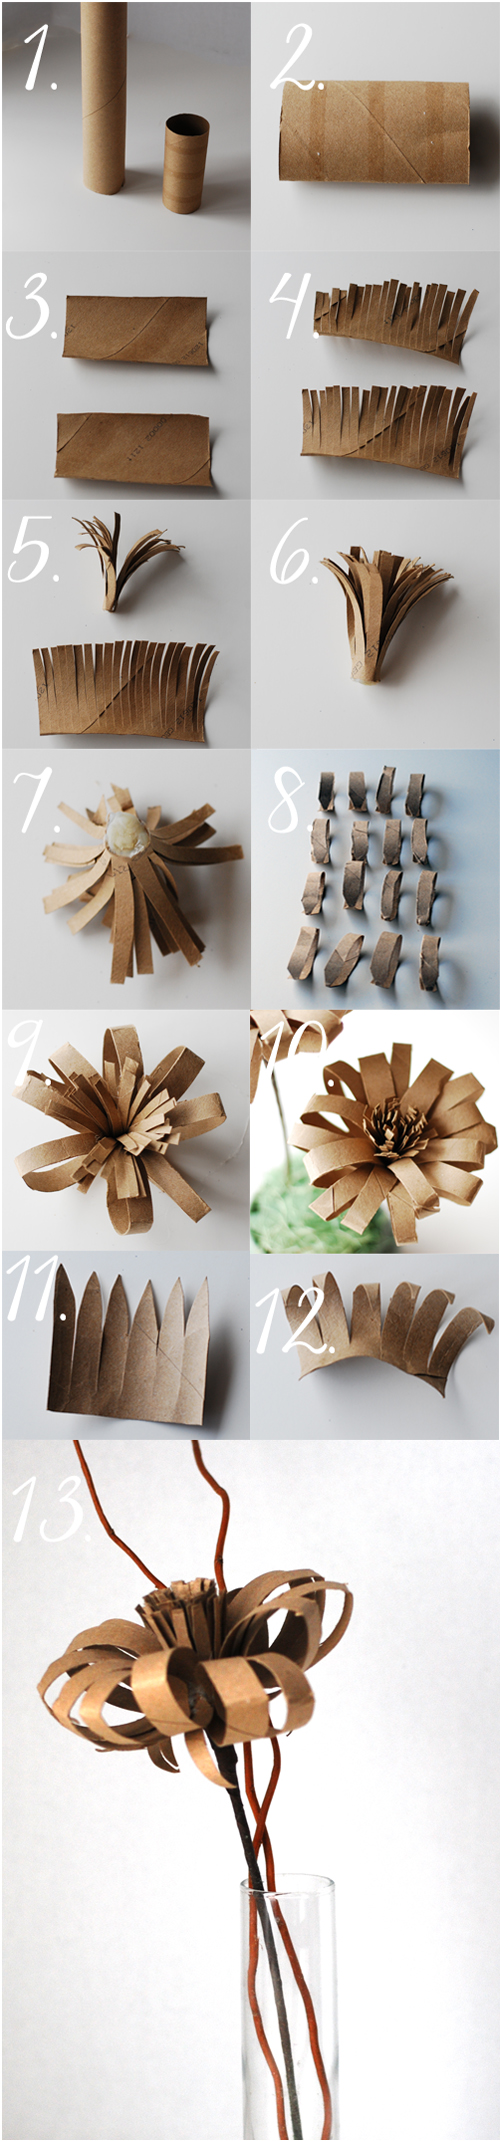 Vintage-paper-flower-from-paper-roll-tutorial DIY